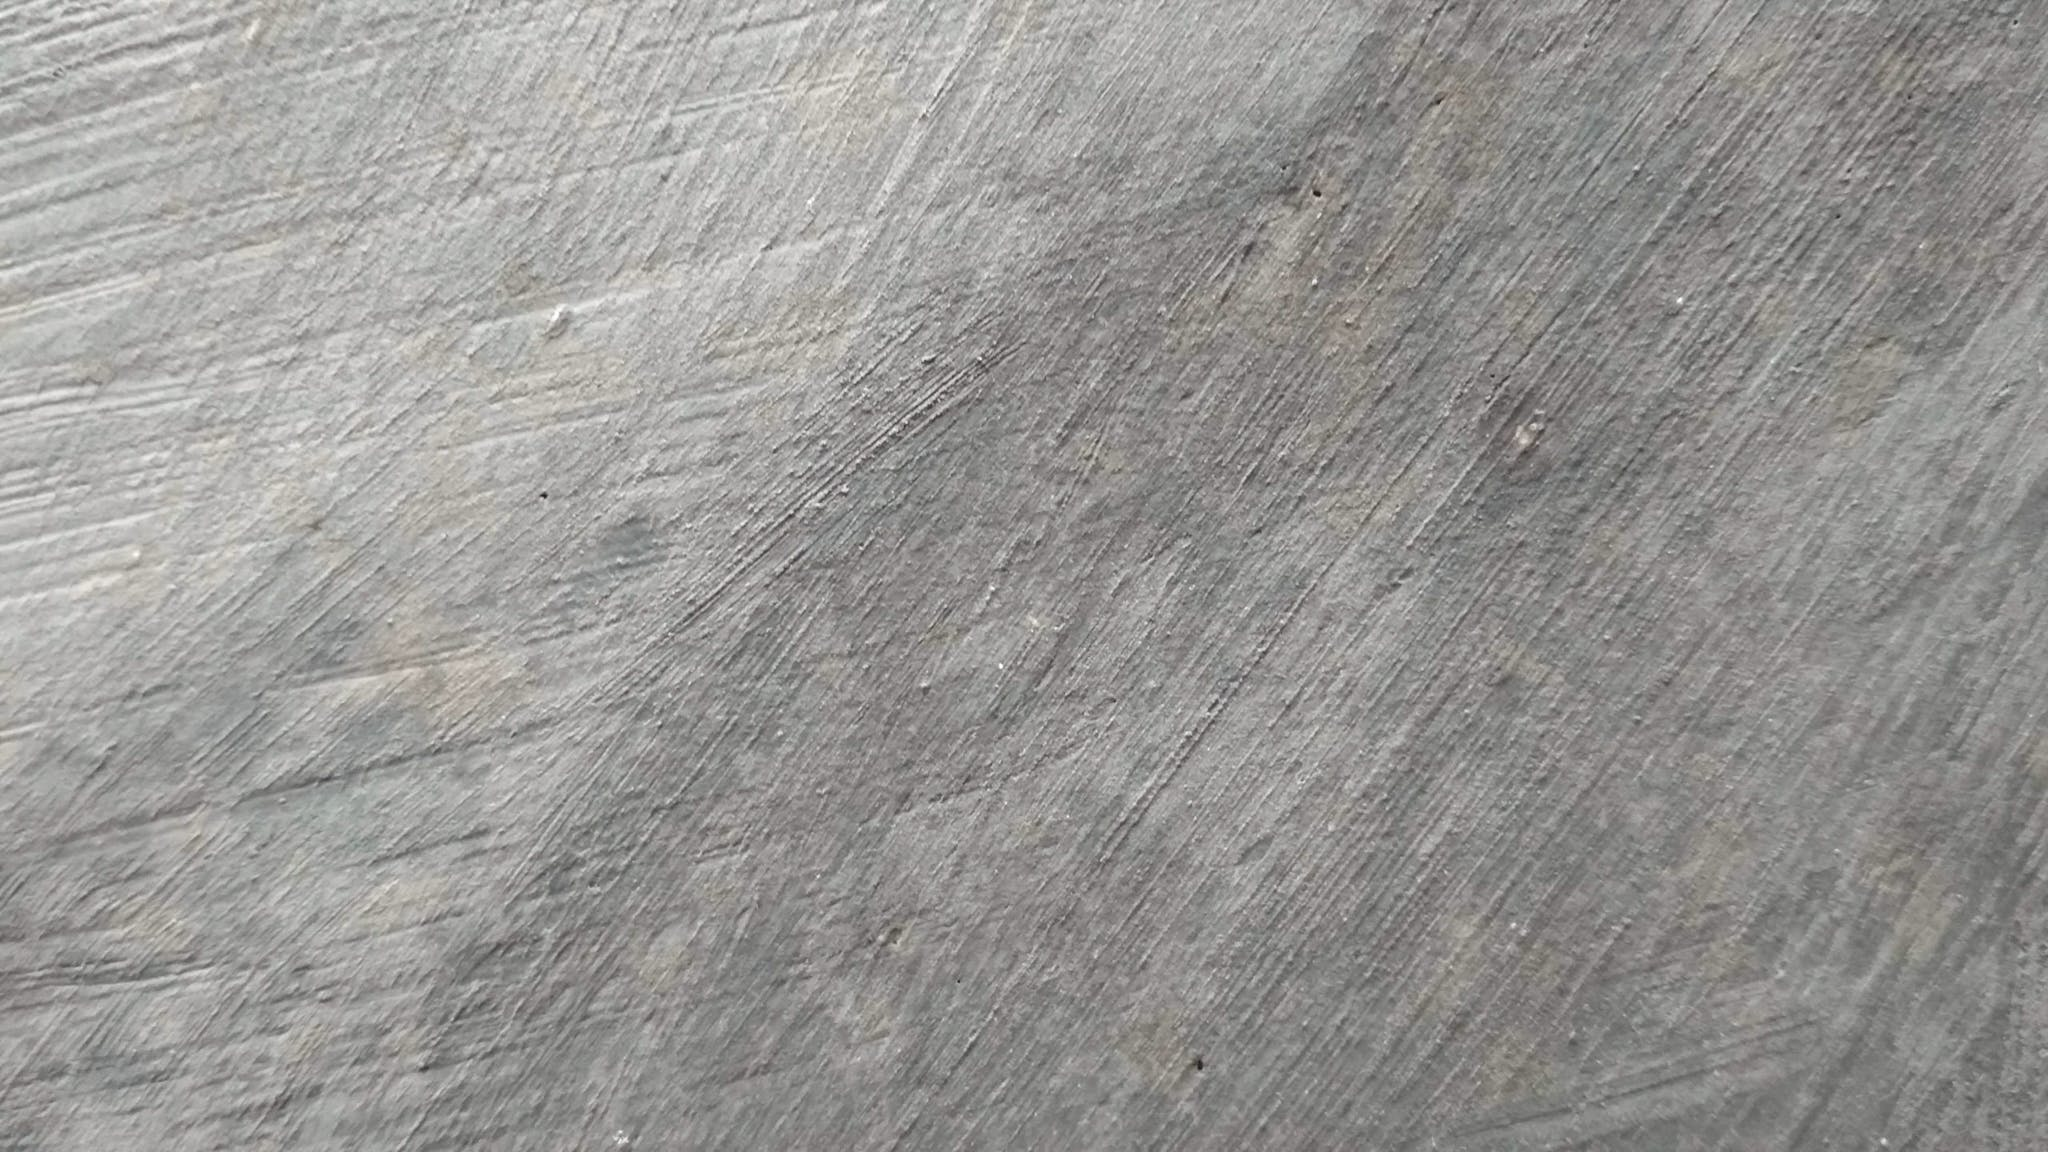 eleven photography, grey, texture